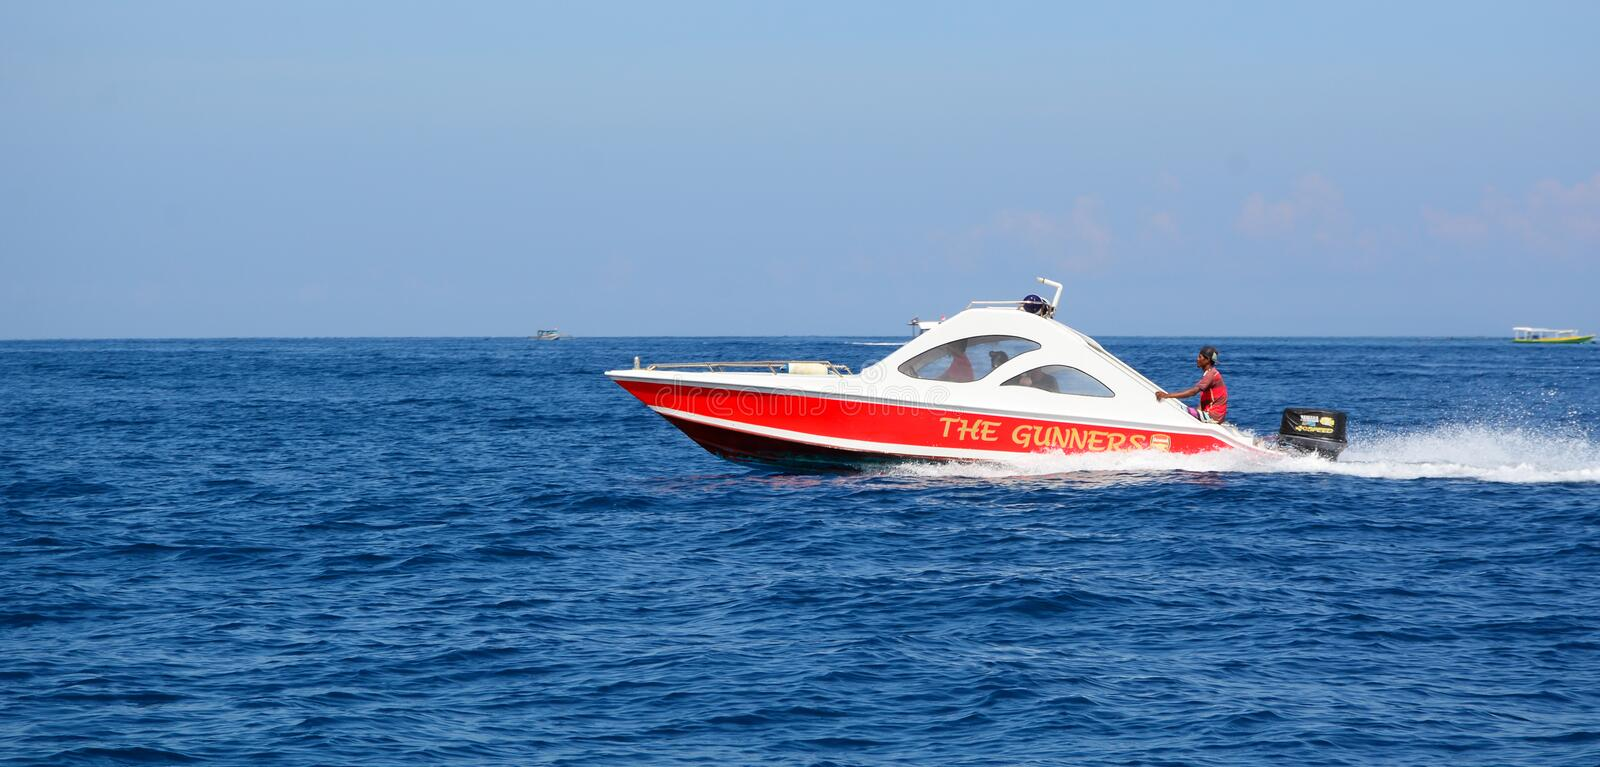 A speedboat running on the sea in Bali, Indonesia stock image